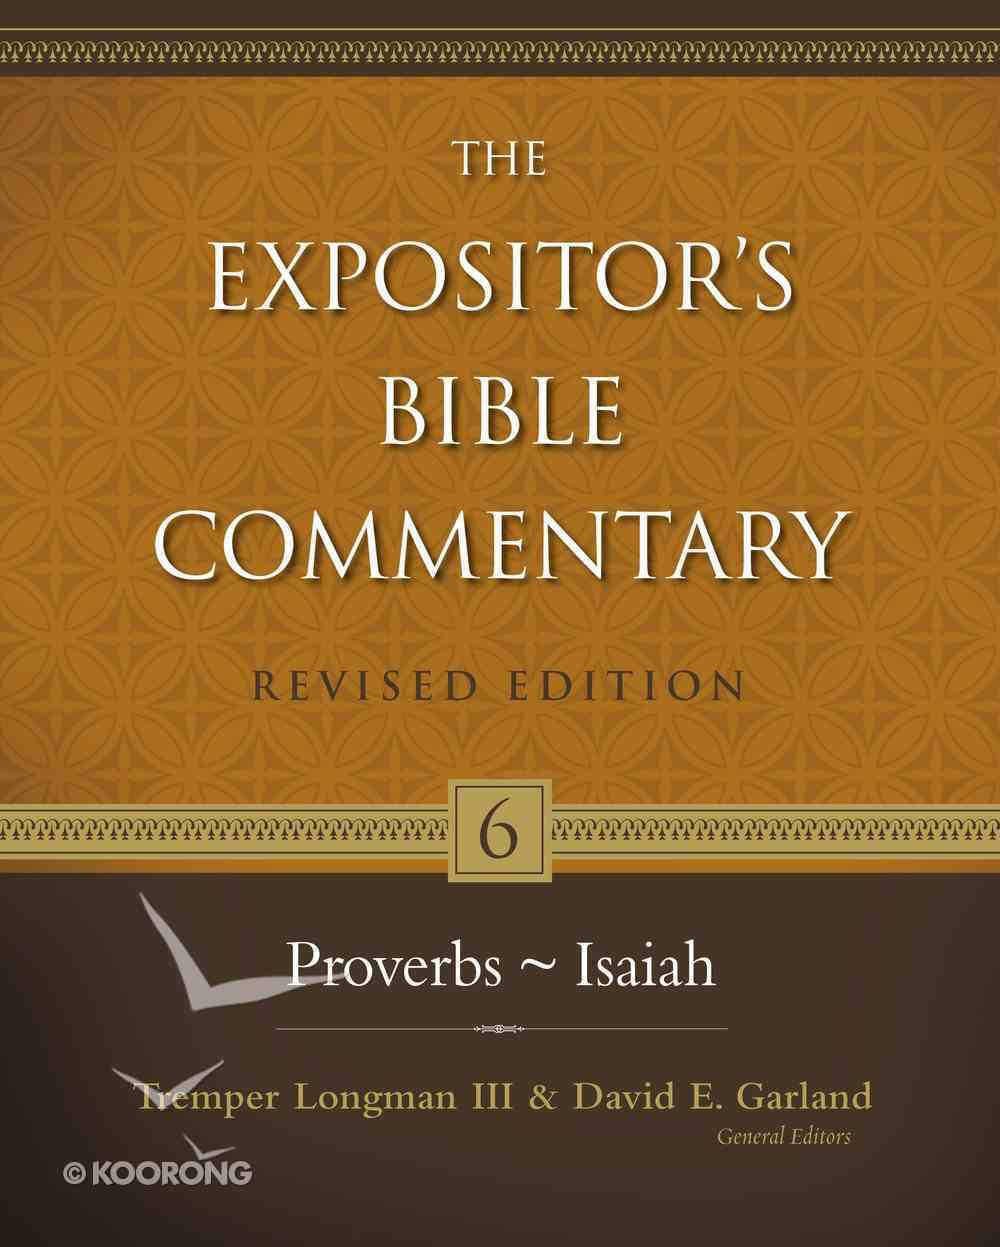 Proverbs - Isaiah (#06 in Expositor's Bible Commentary Revised Series) eBook